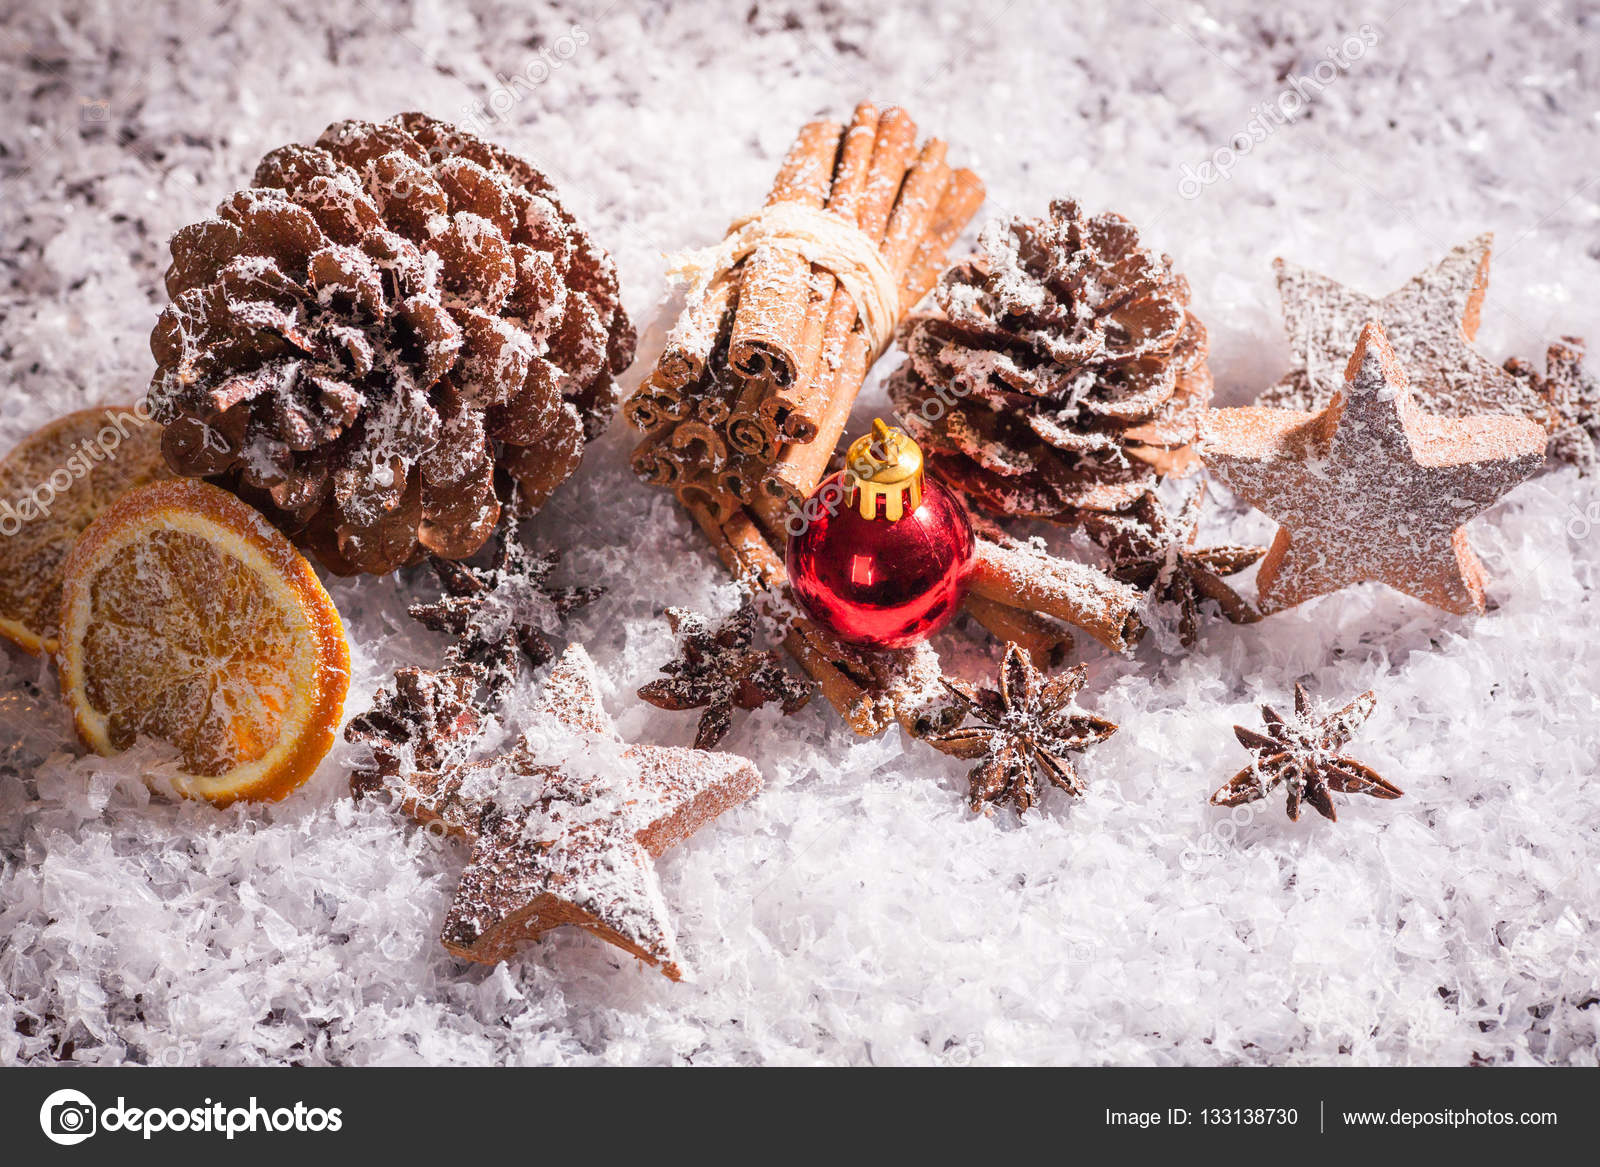 Stylish Rustic Winter Wallpaper With Anise Cinnamon And Pine Cones Stock Photo